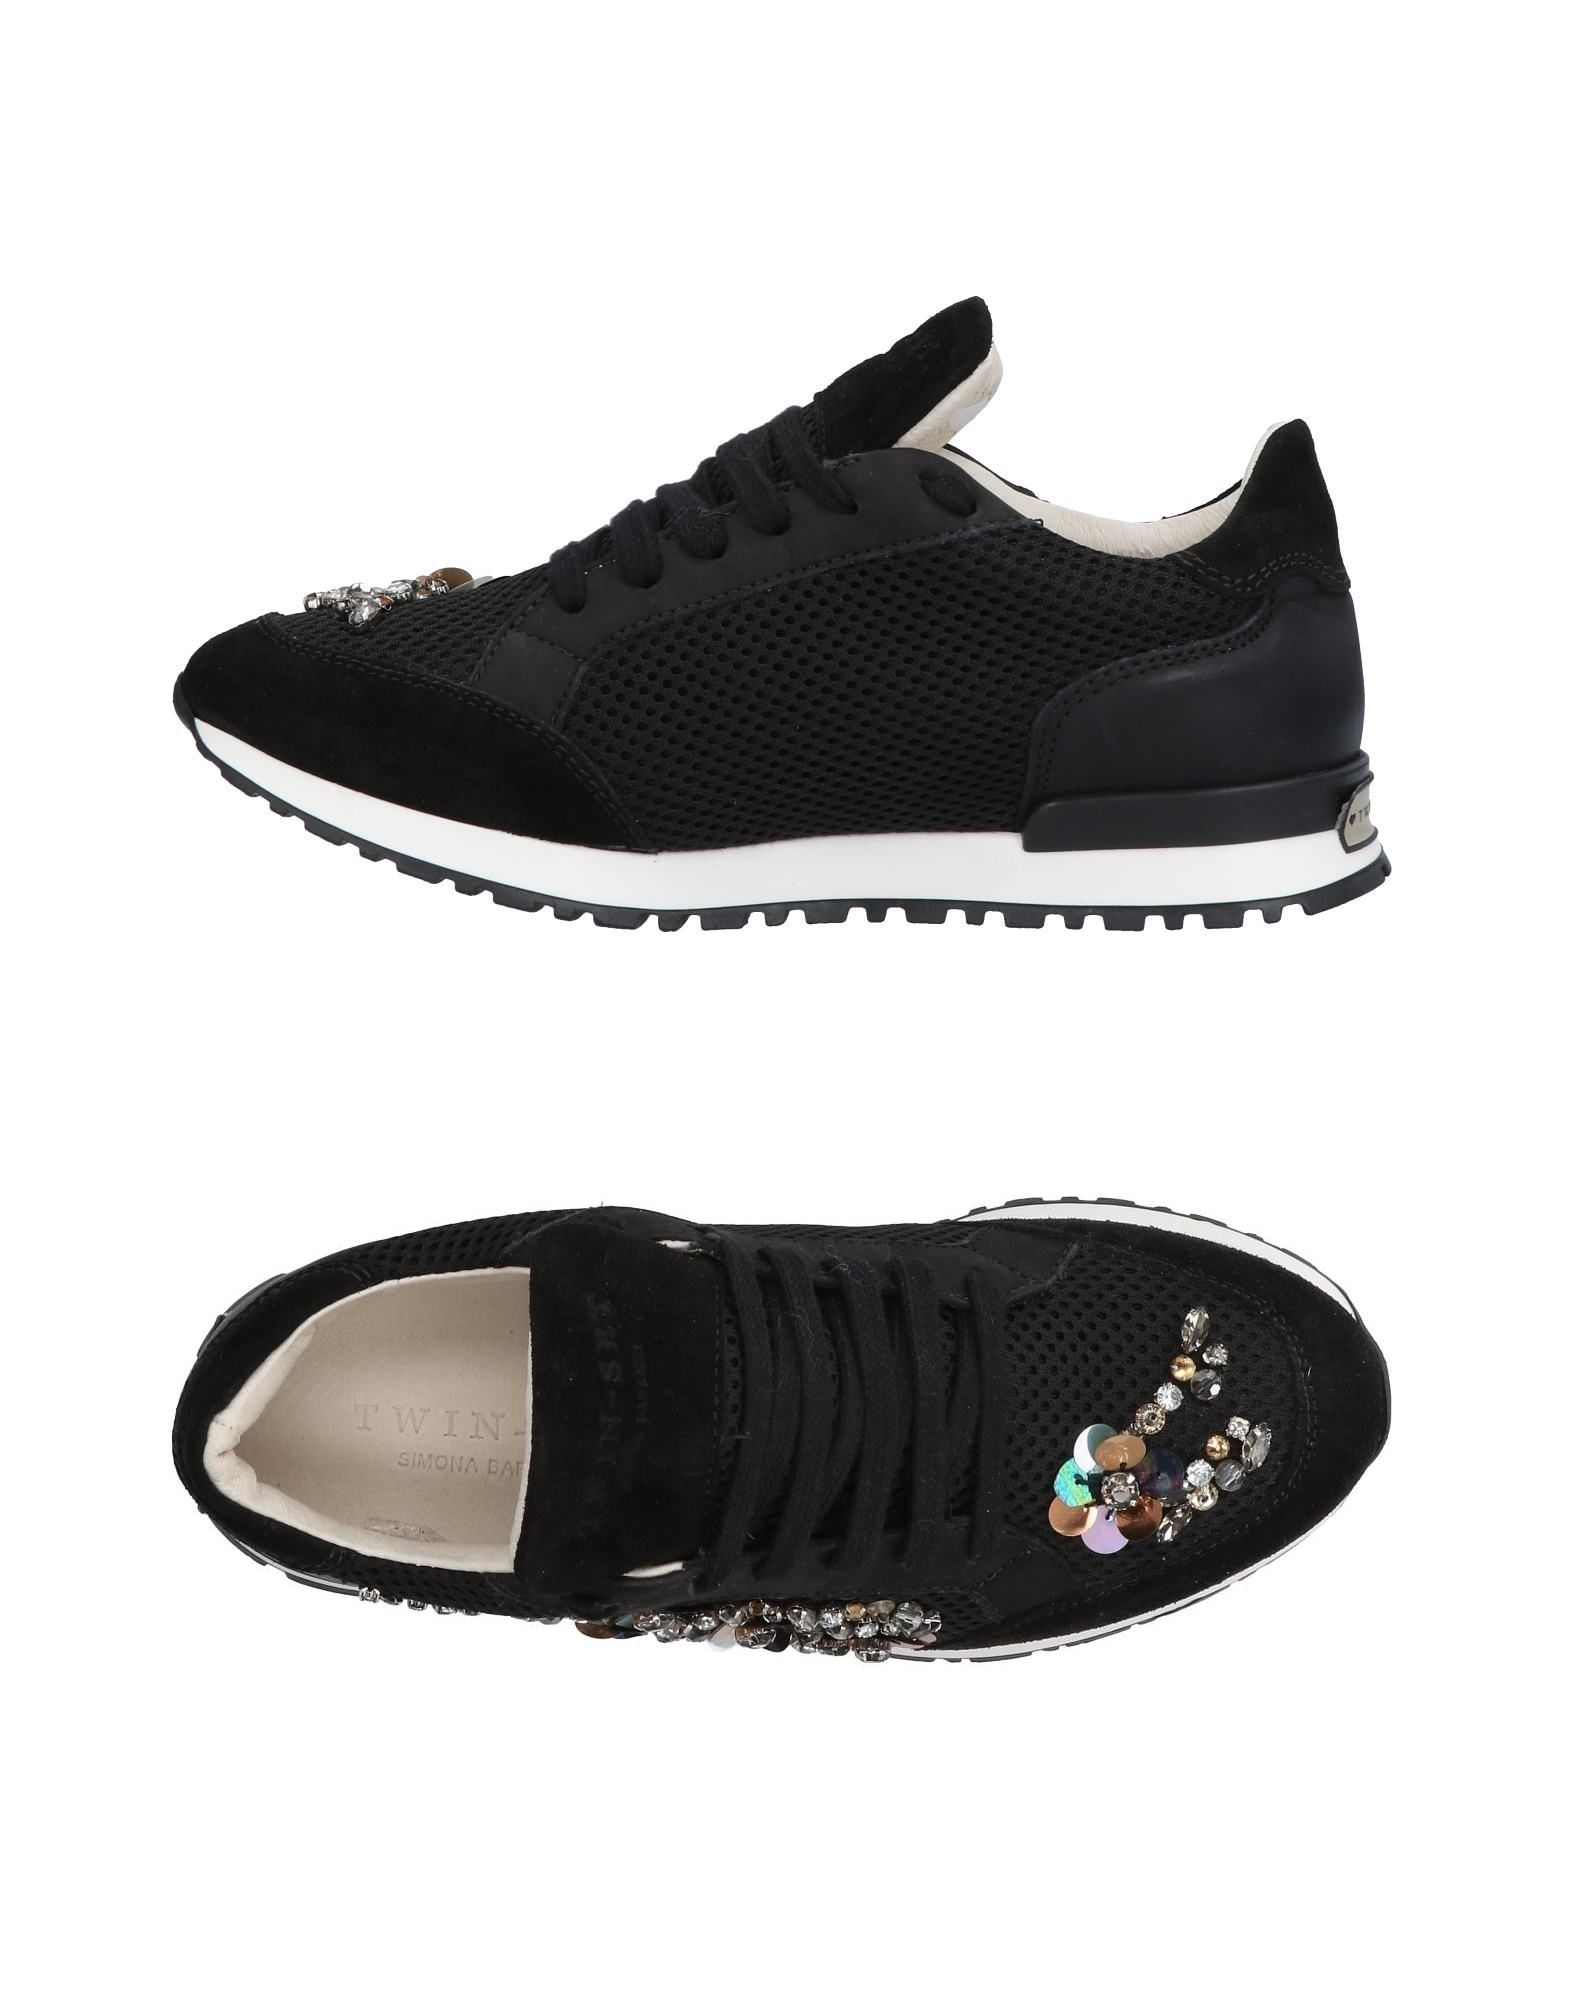 Twin-Set Simona Barbieri Sneakers - Women online Twin-Set Simona Barbieri Sneakers online Women on  Canada - 11472162VL 9f5579